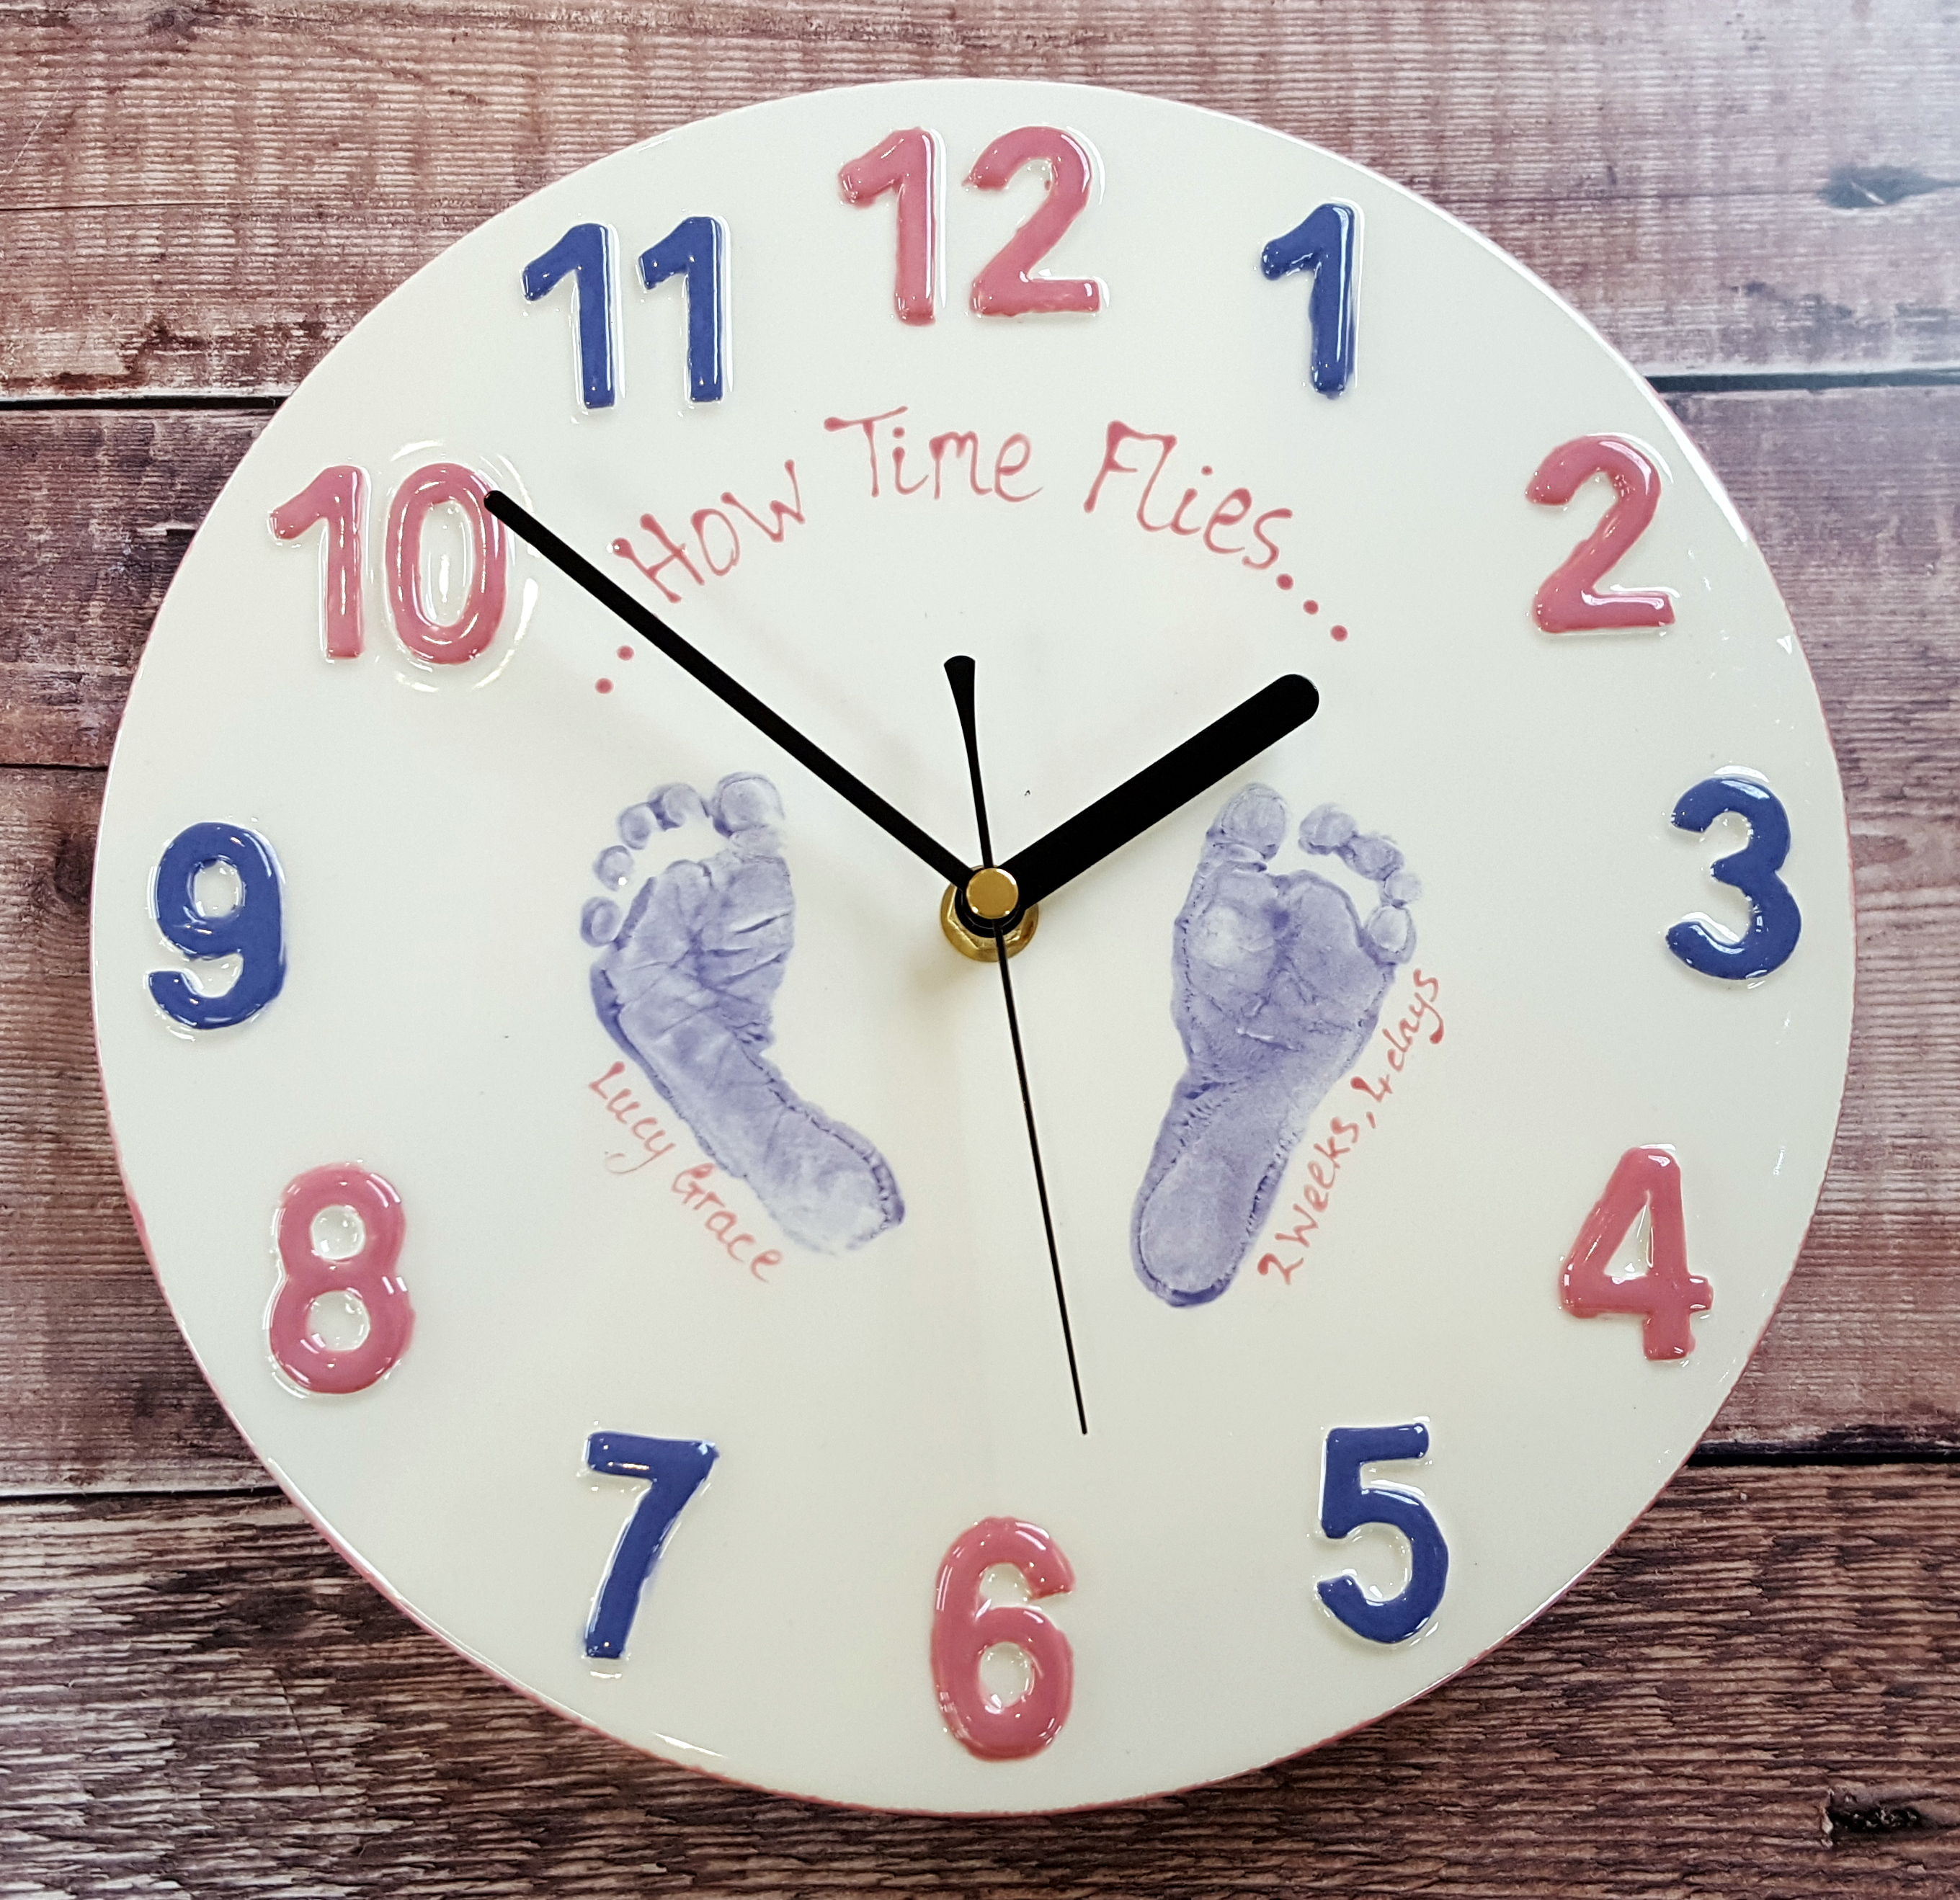 How Time Flies - Clock - Lucy Grace